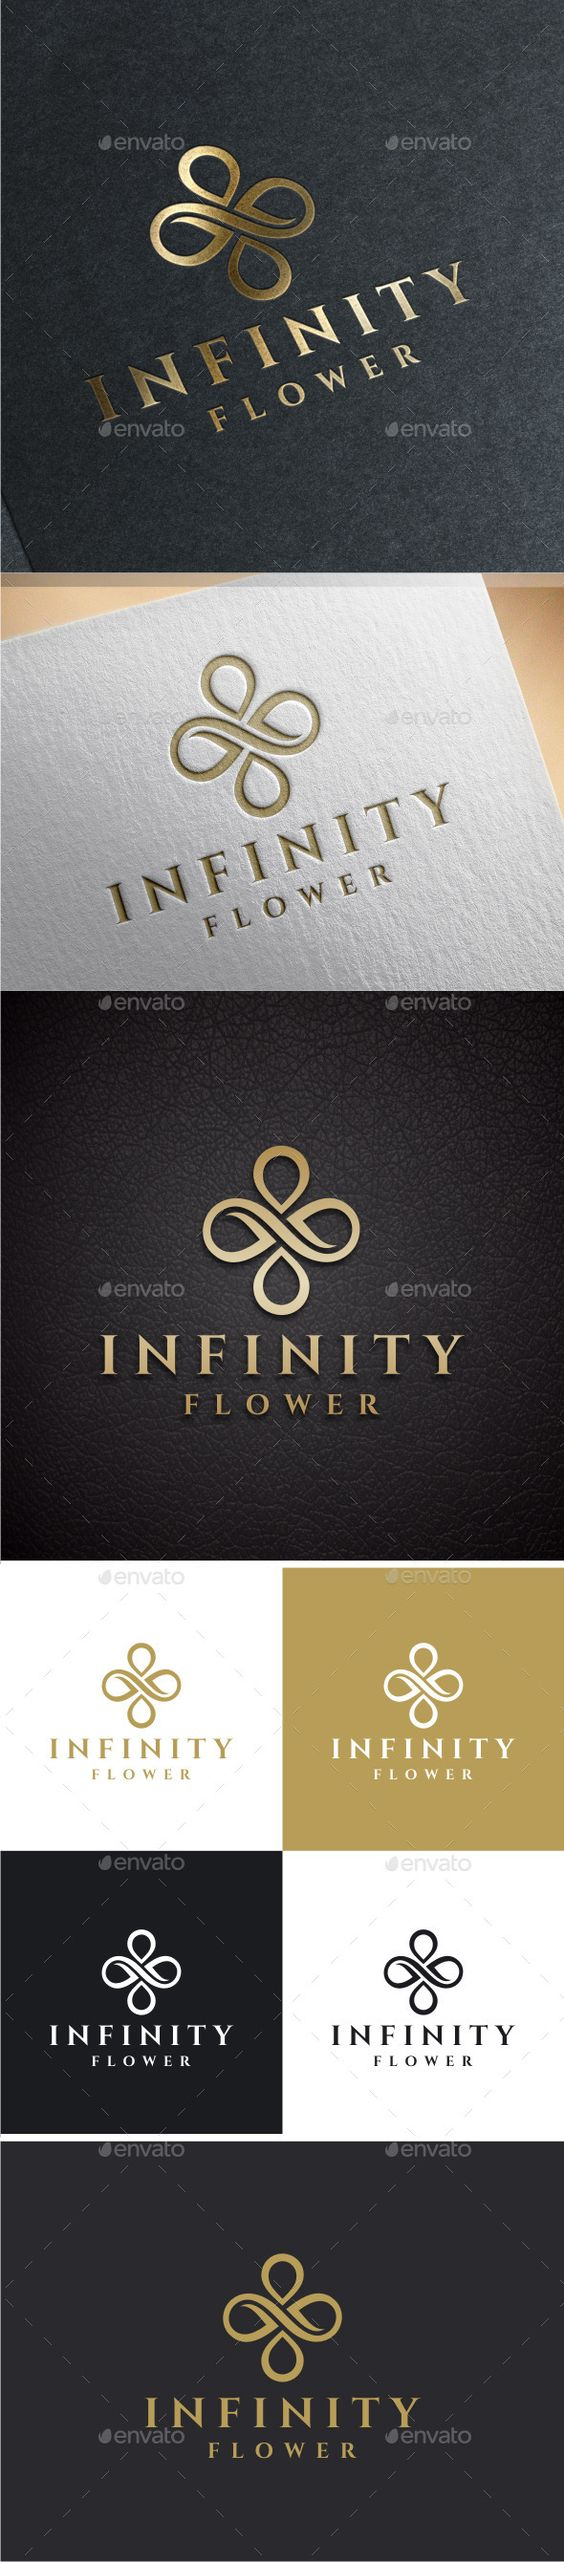 Infinity Flower Logo  #luxury #nature #plant • Available here → http://graphicriver.net/item/infinity-flower-logo/8514414?s_rank=230&ref=pxcr